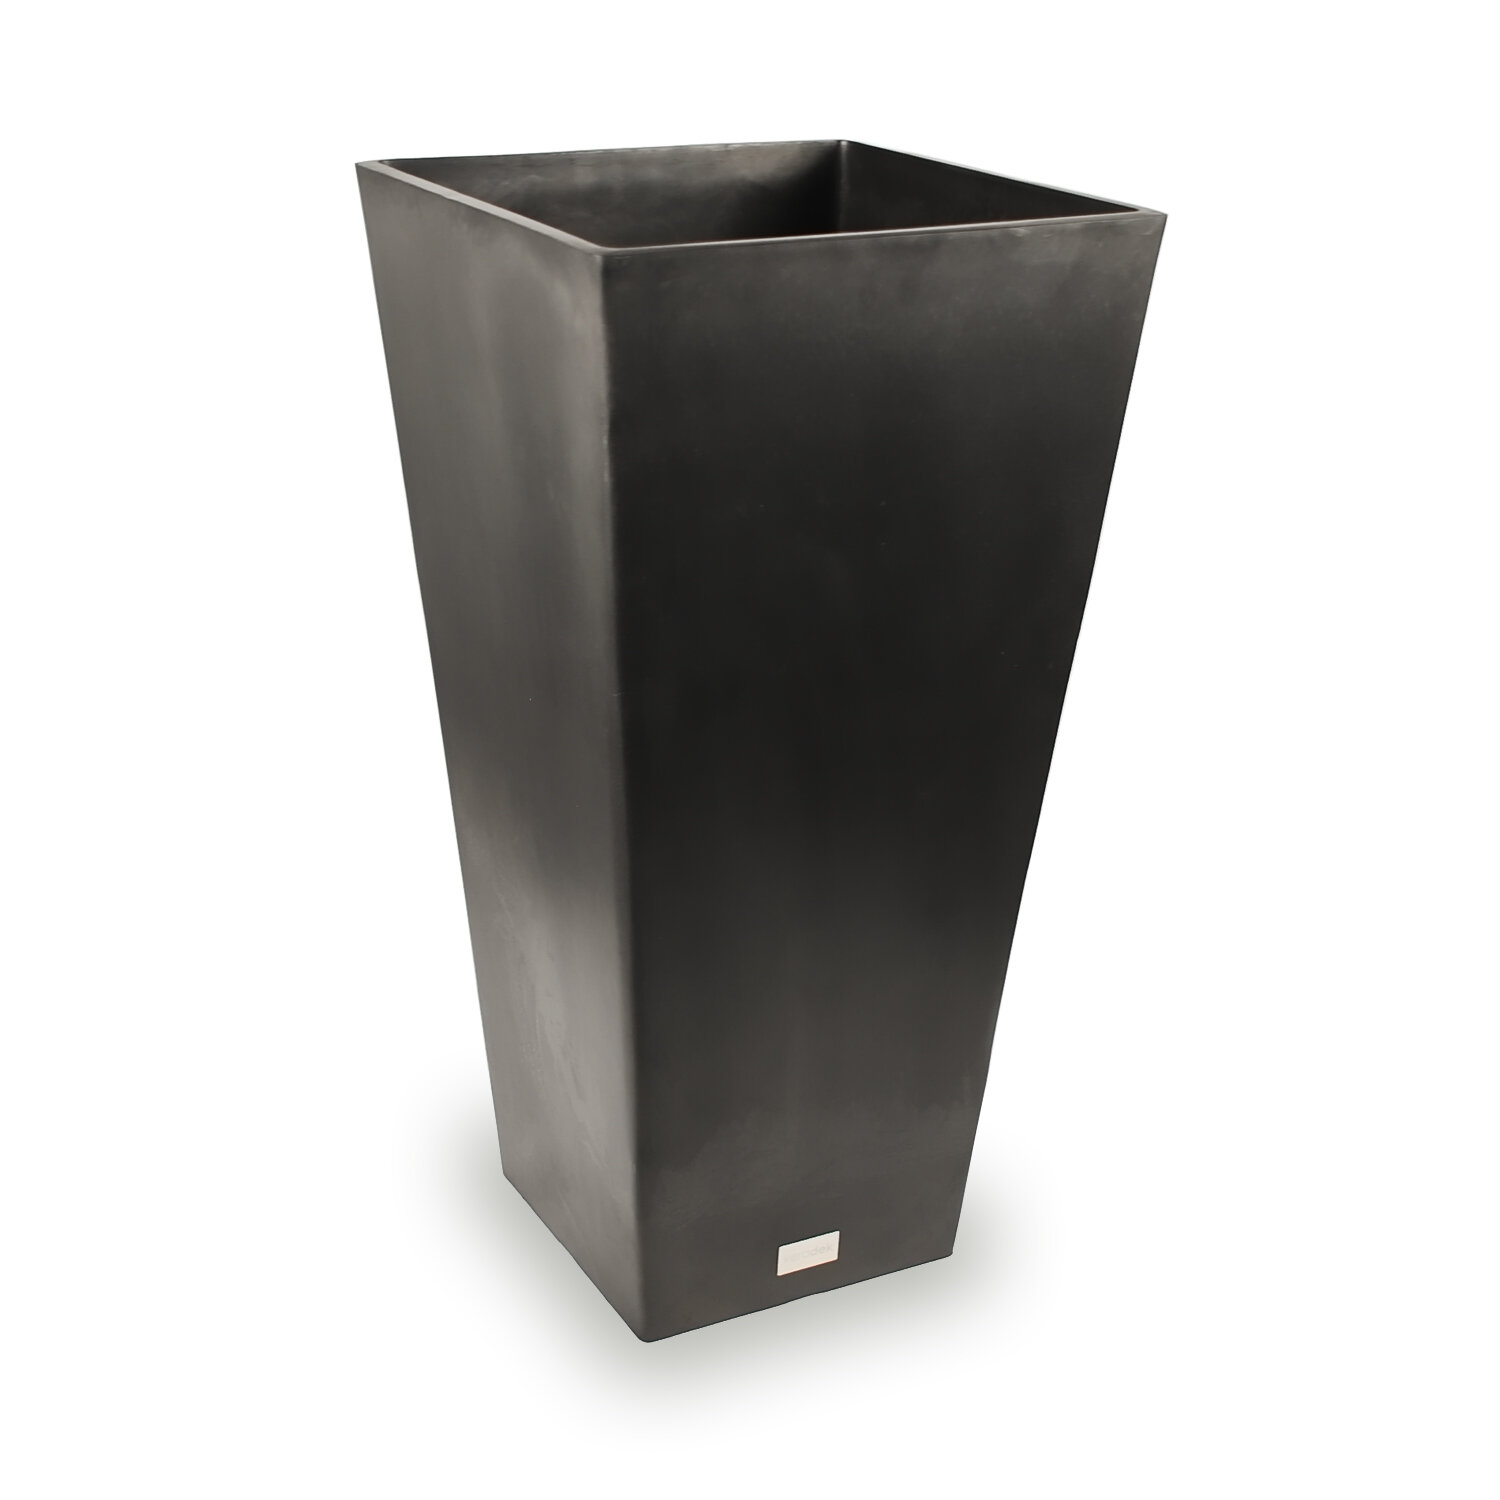 Veradek Midland Tall Square Pot Planter